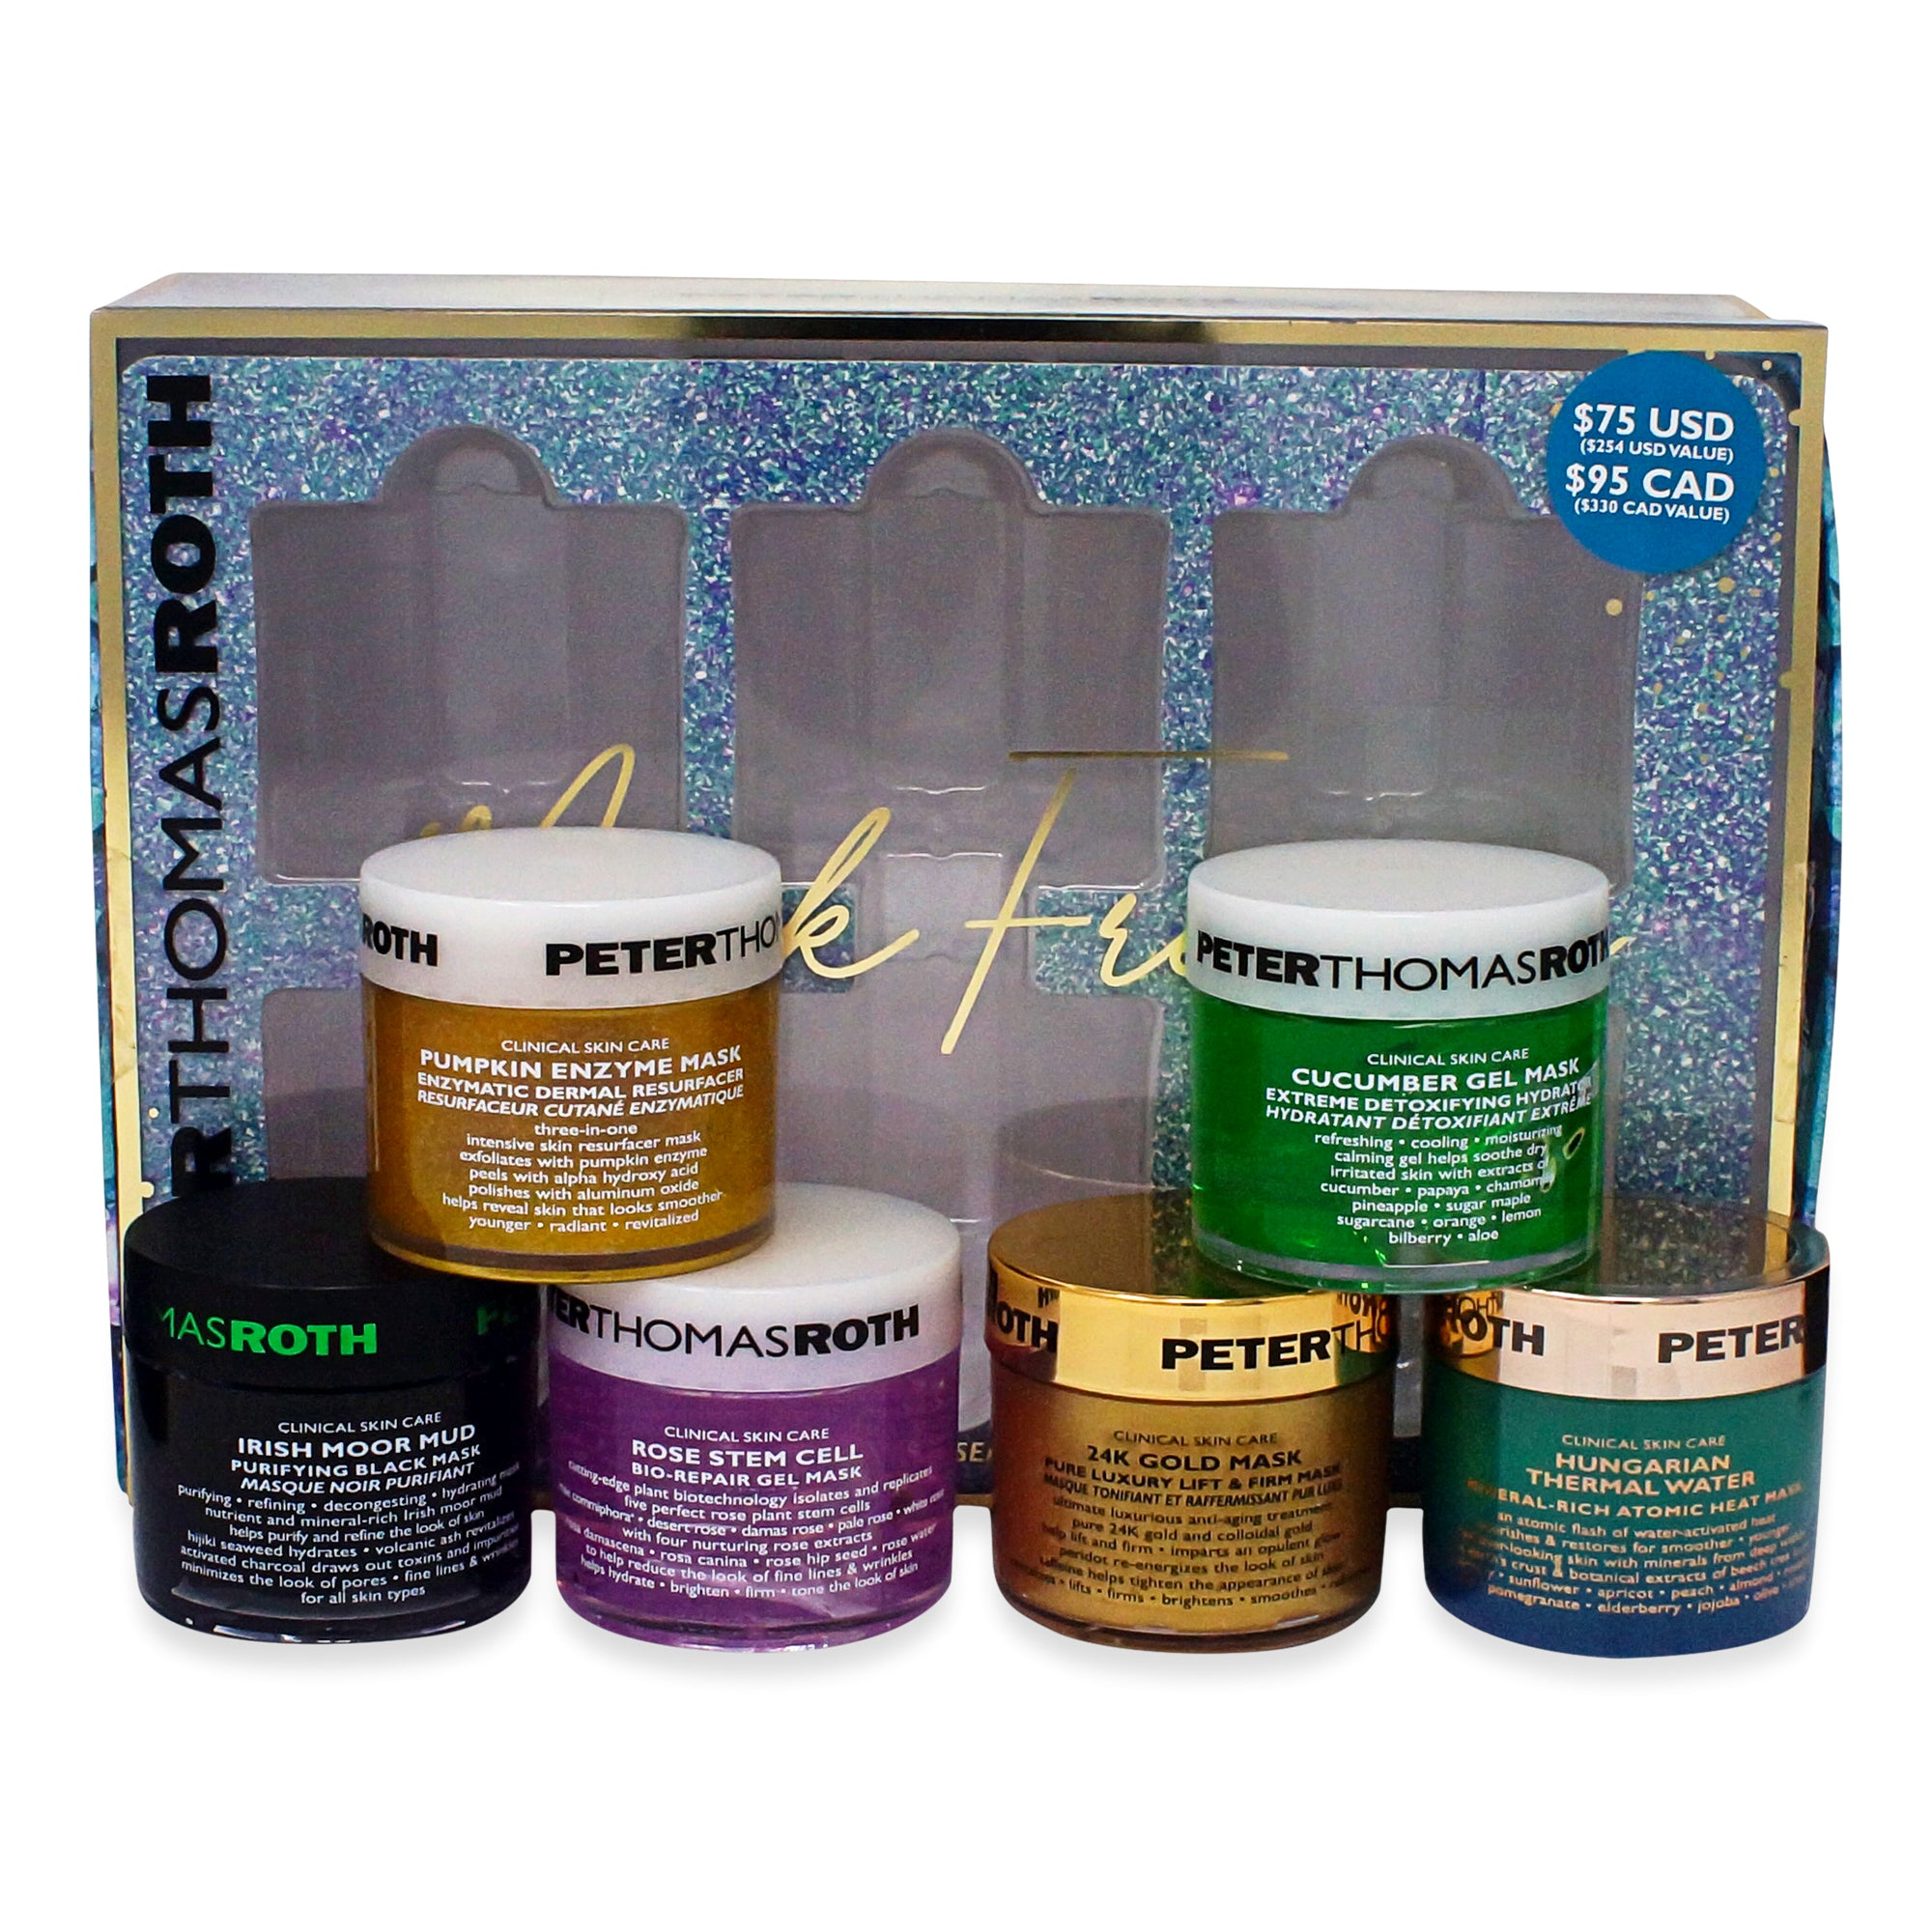 PETER THOMAS ROTH ~ MASK FRENZY KIT * NEW 2019